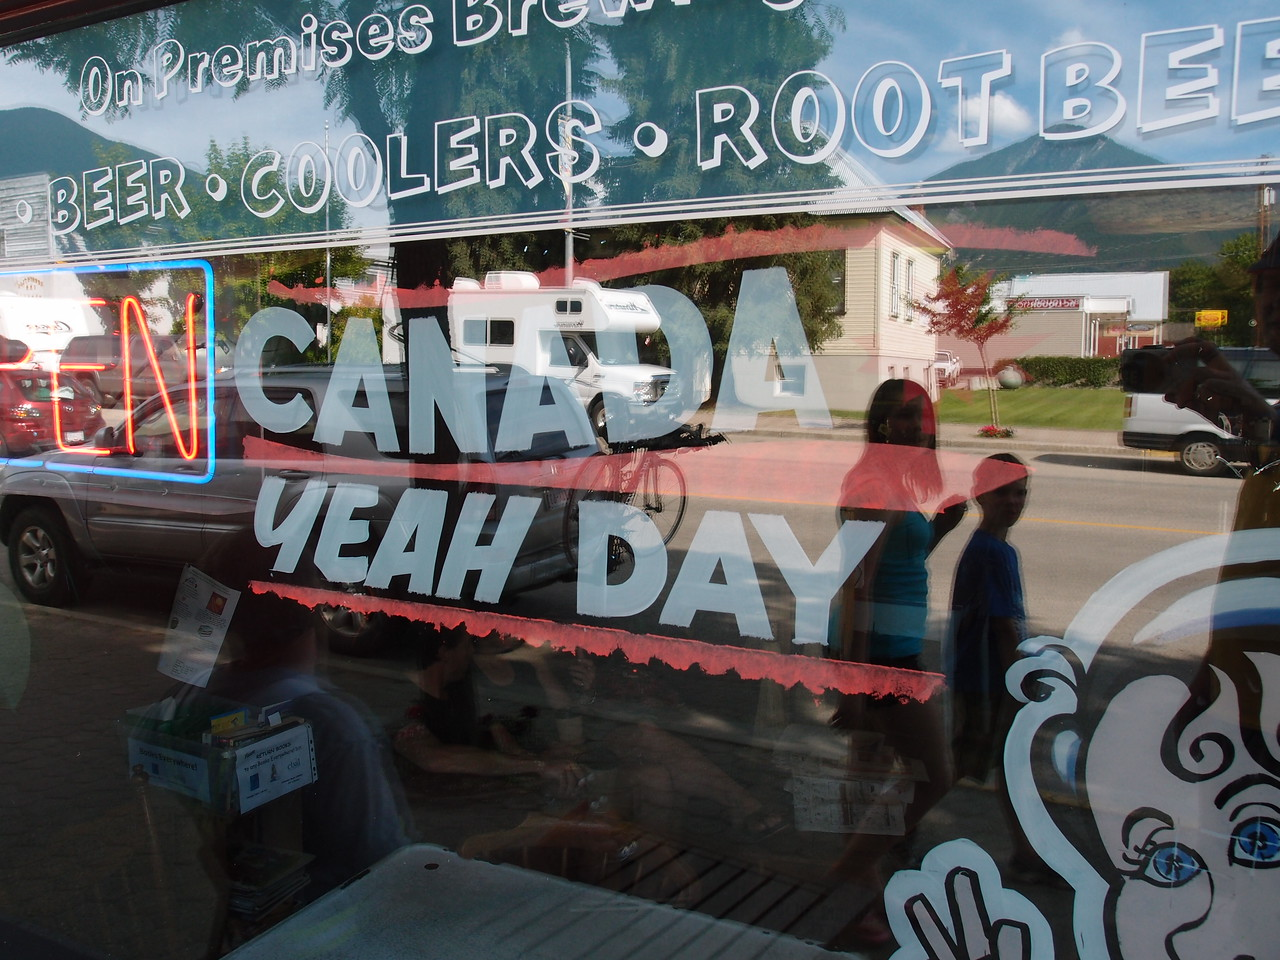 Canada yeah day!